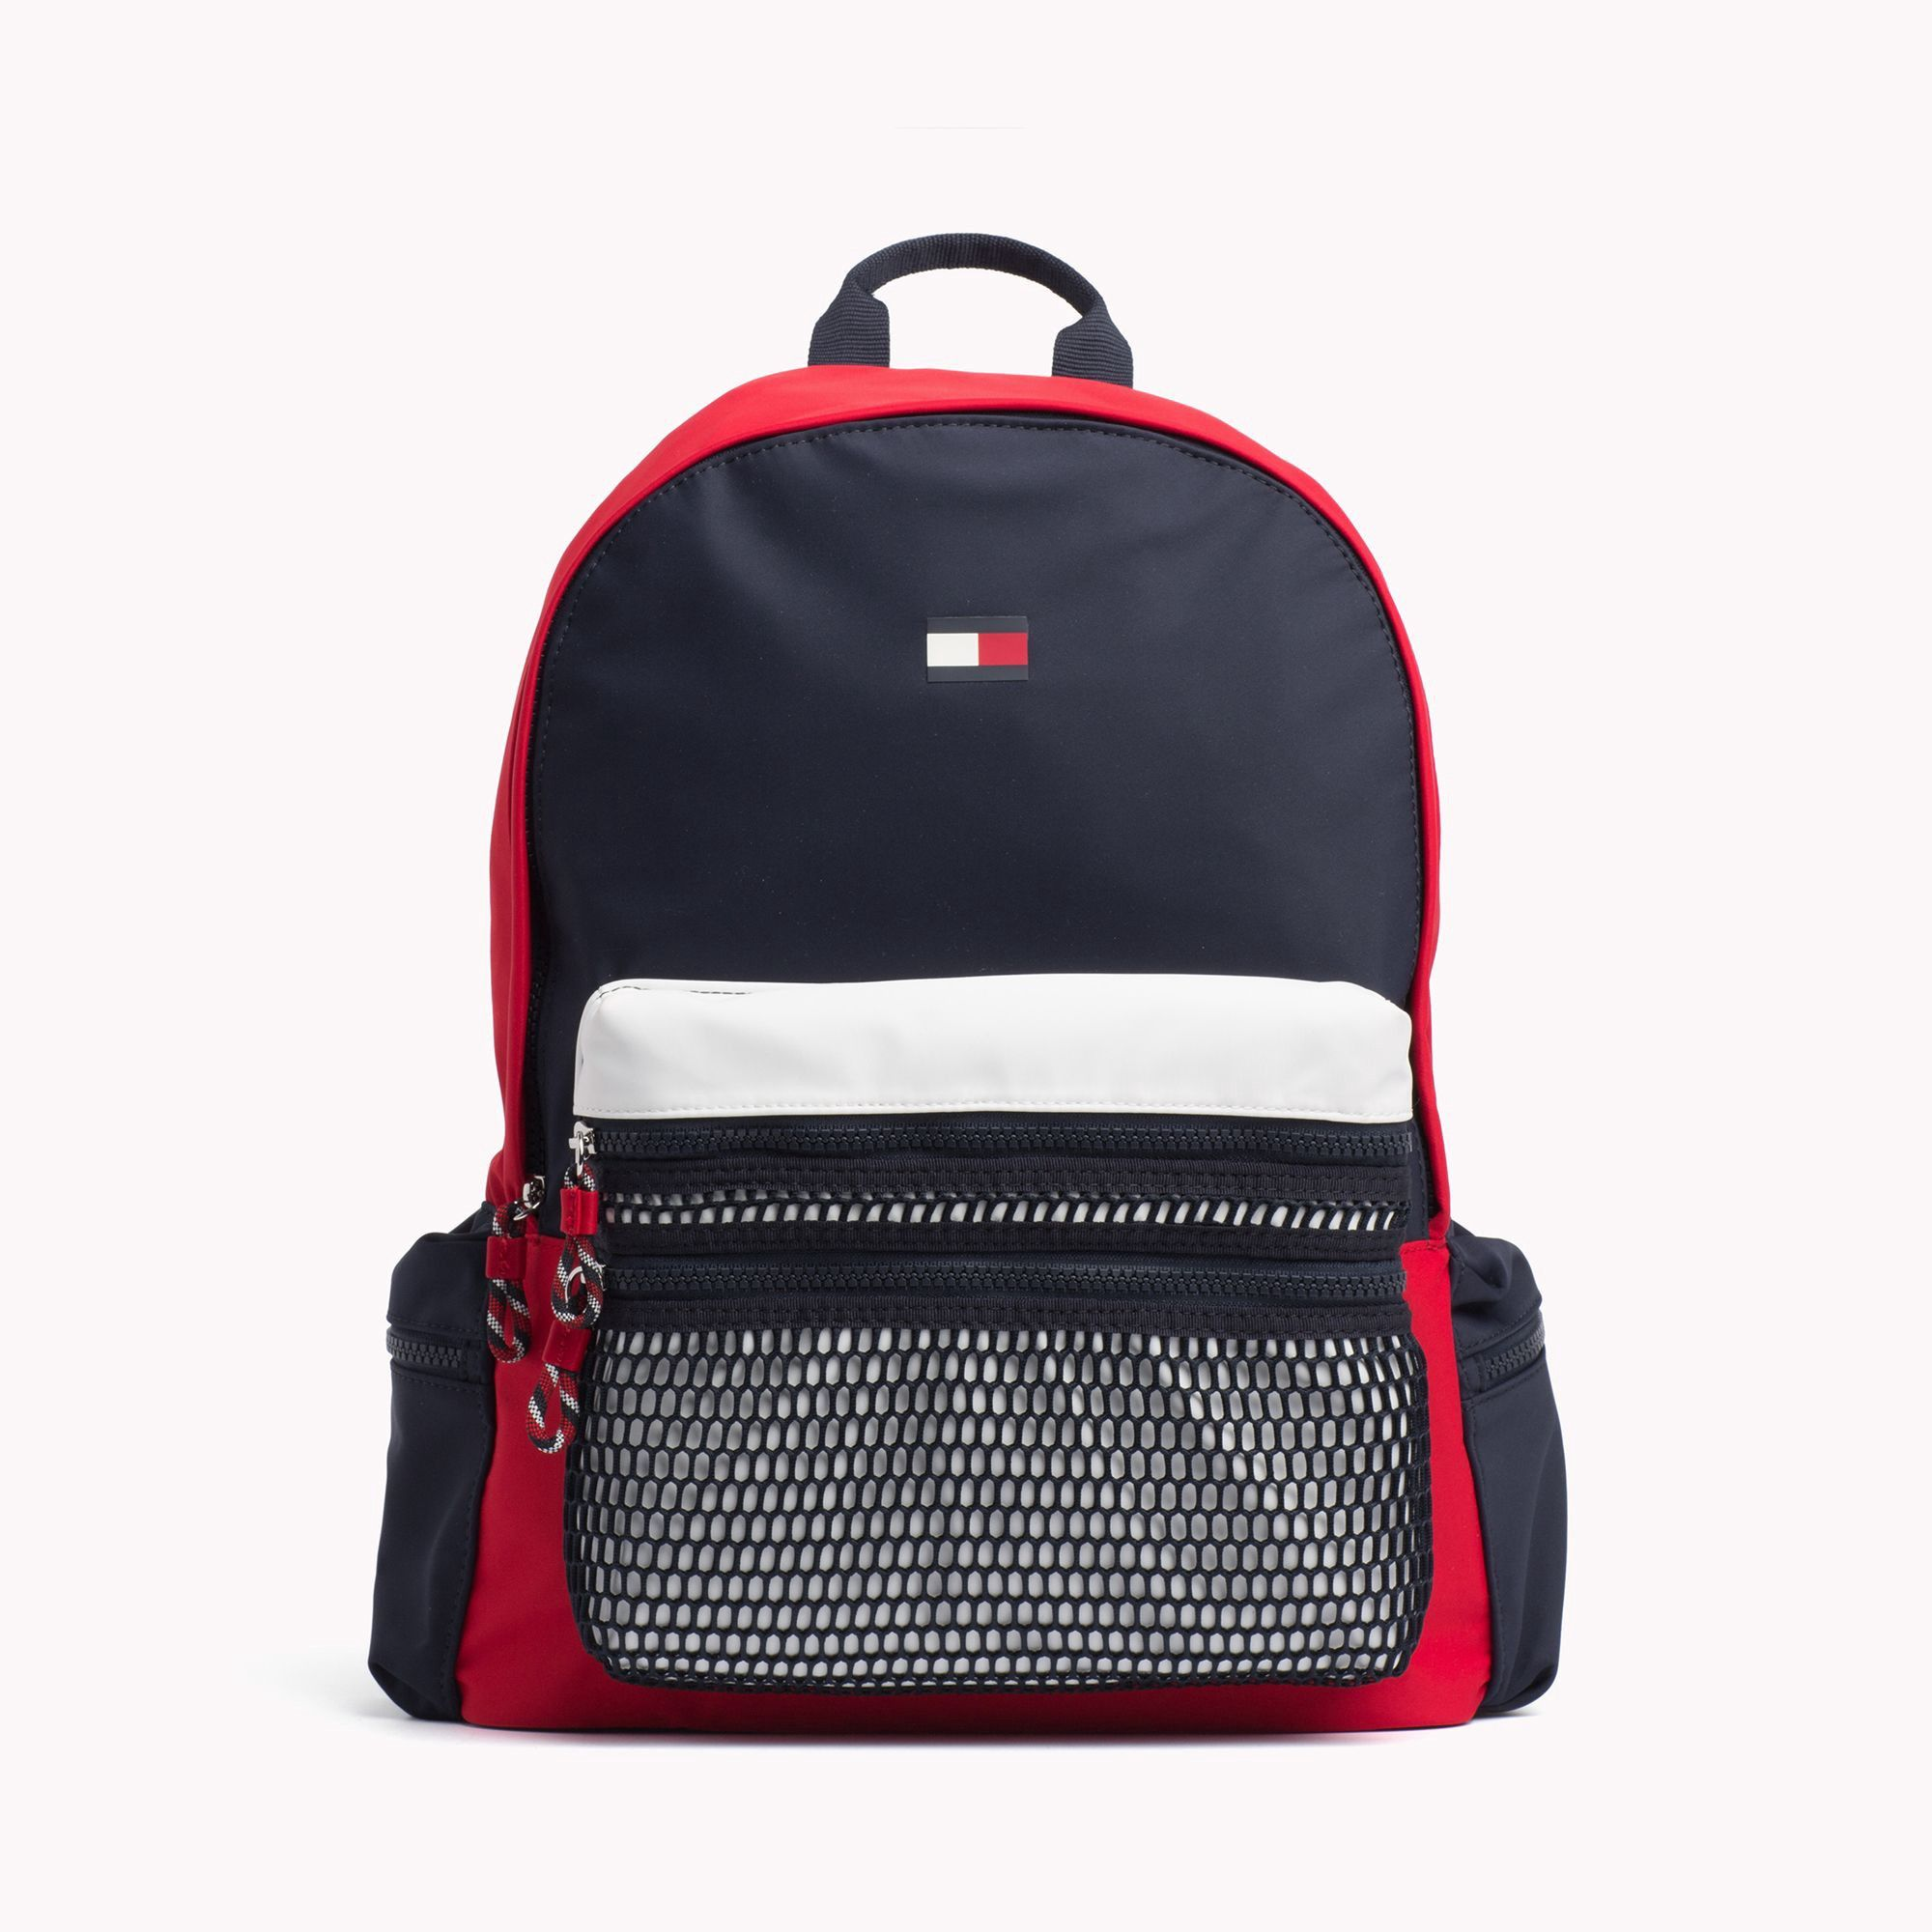 Th Kids Signature Backpack By Tommy Hilfiger In 2019 Products